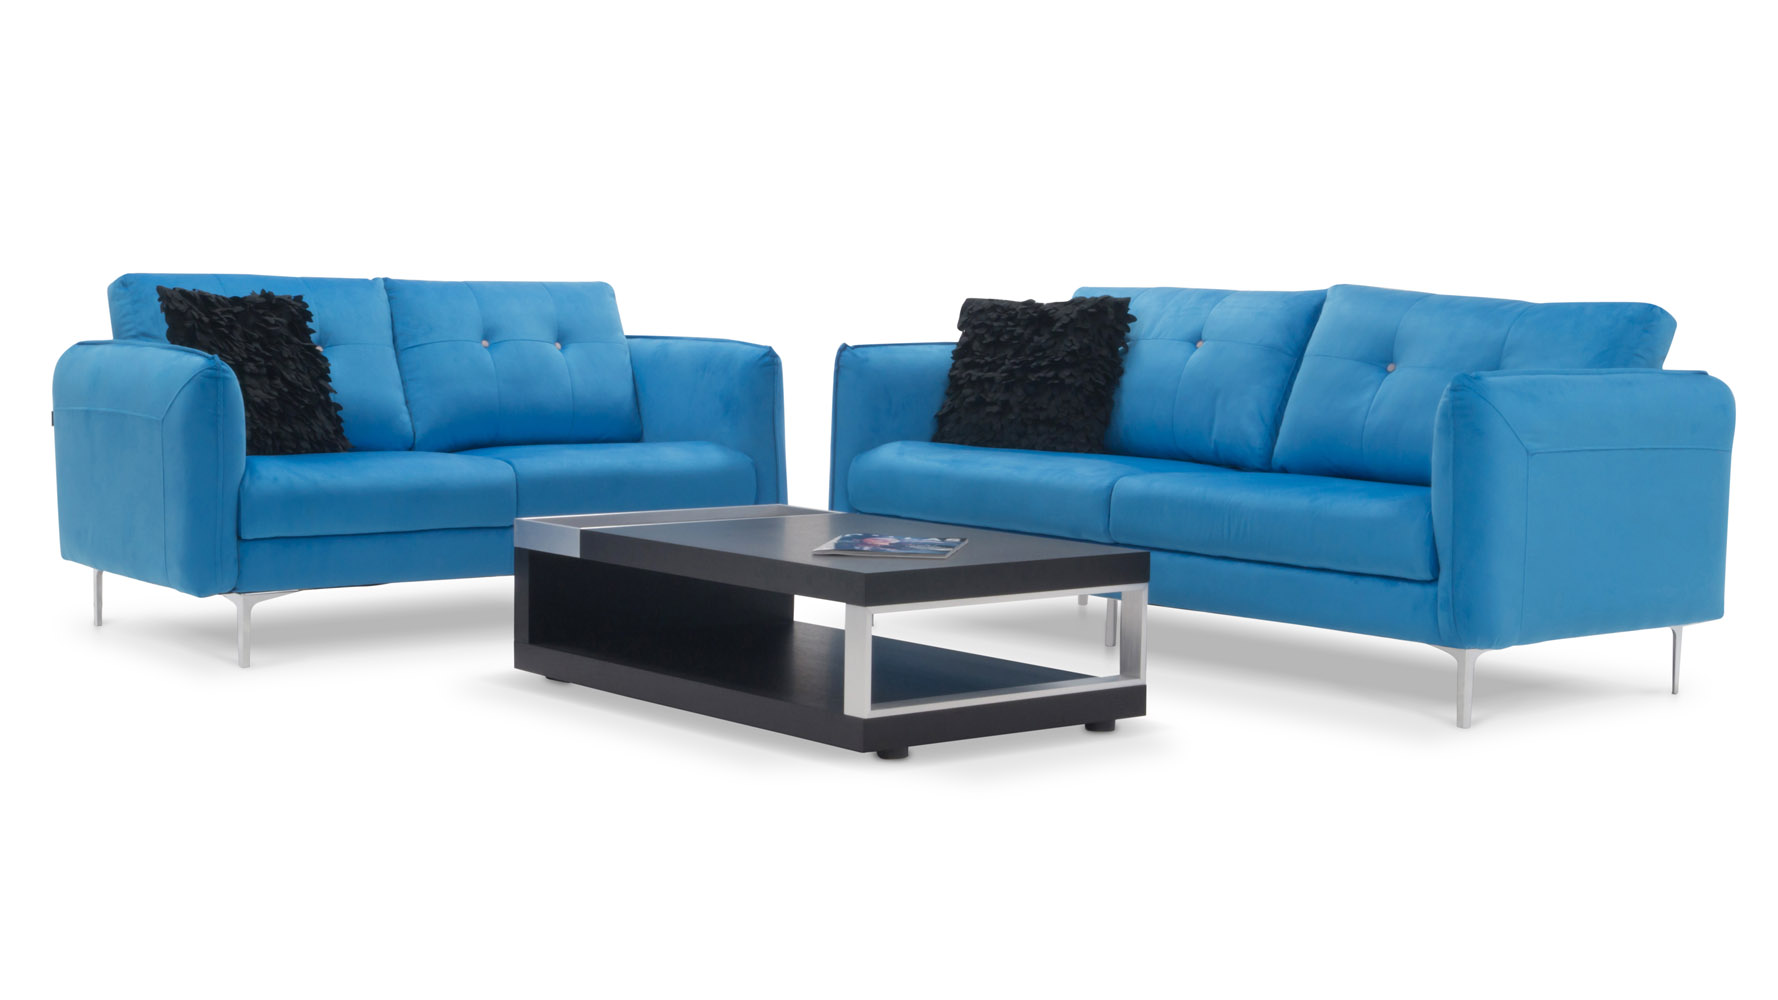 skyler 2 3 blue fabric sofa set zuri furniture - Blue Living Room Set